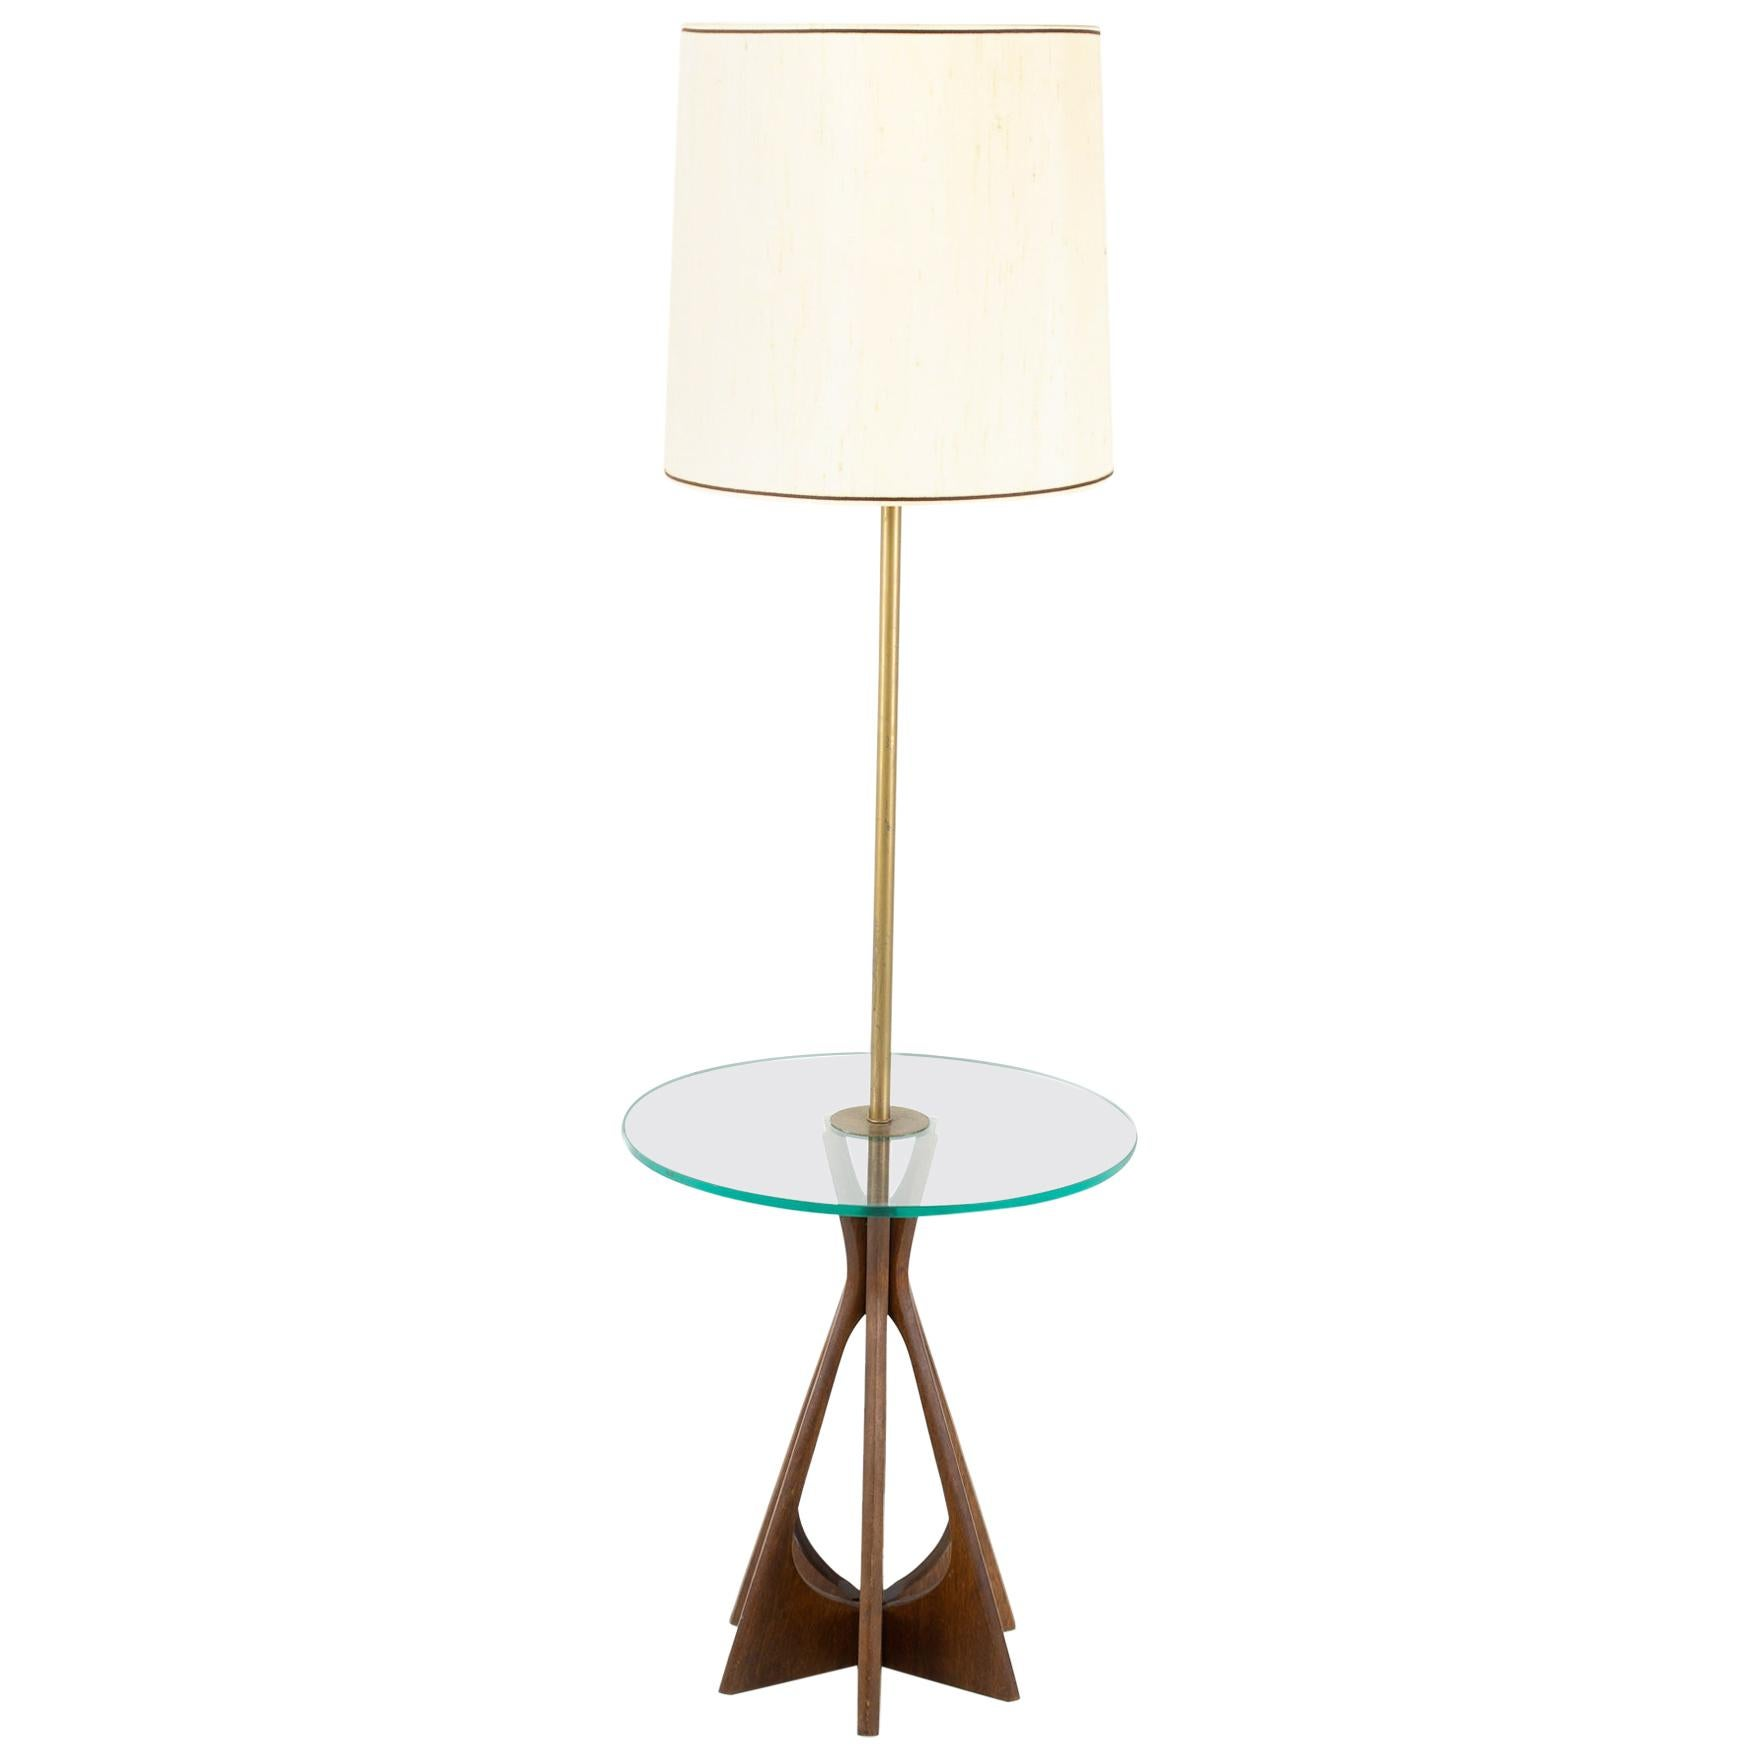 Brutalist Brasilia Style Mid Century Walnut Floor Lamp with Glass Table